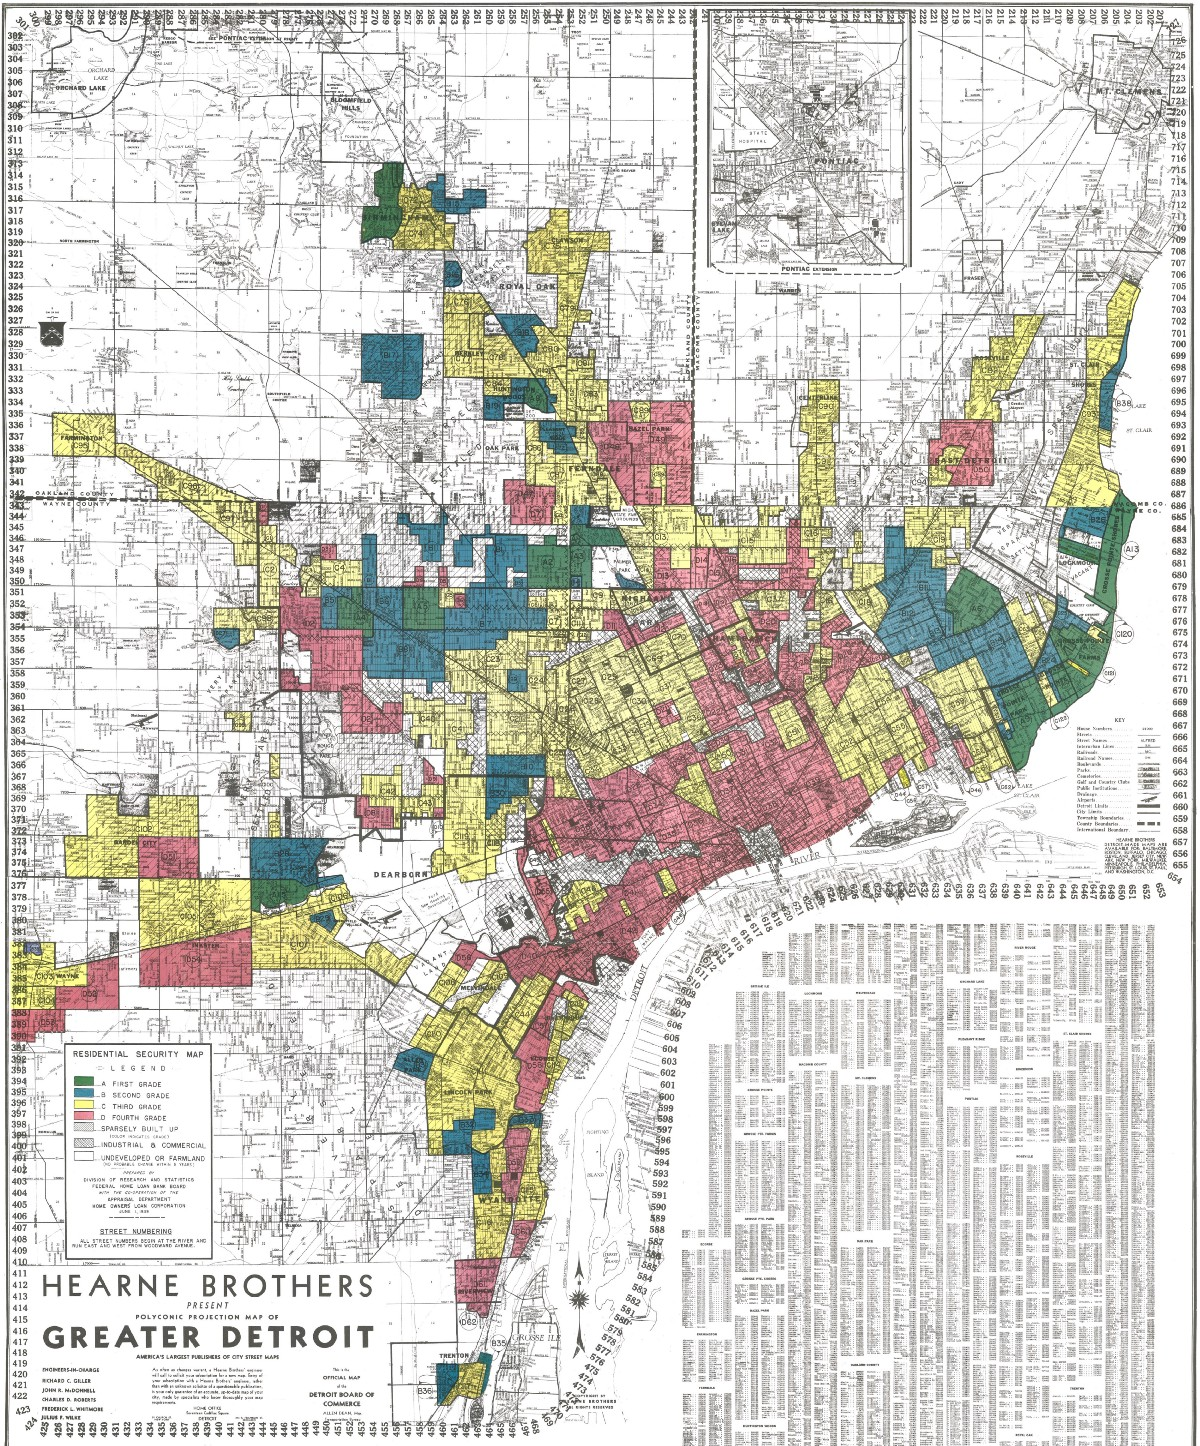 Until 1968 The Racist Pretext To Write Off Entire Neighborhoods As Hazardous Was Not Only Norm But Completely Legal